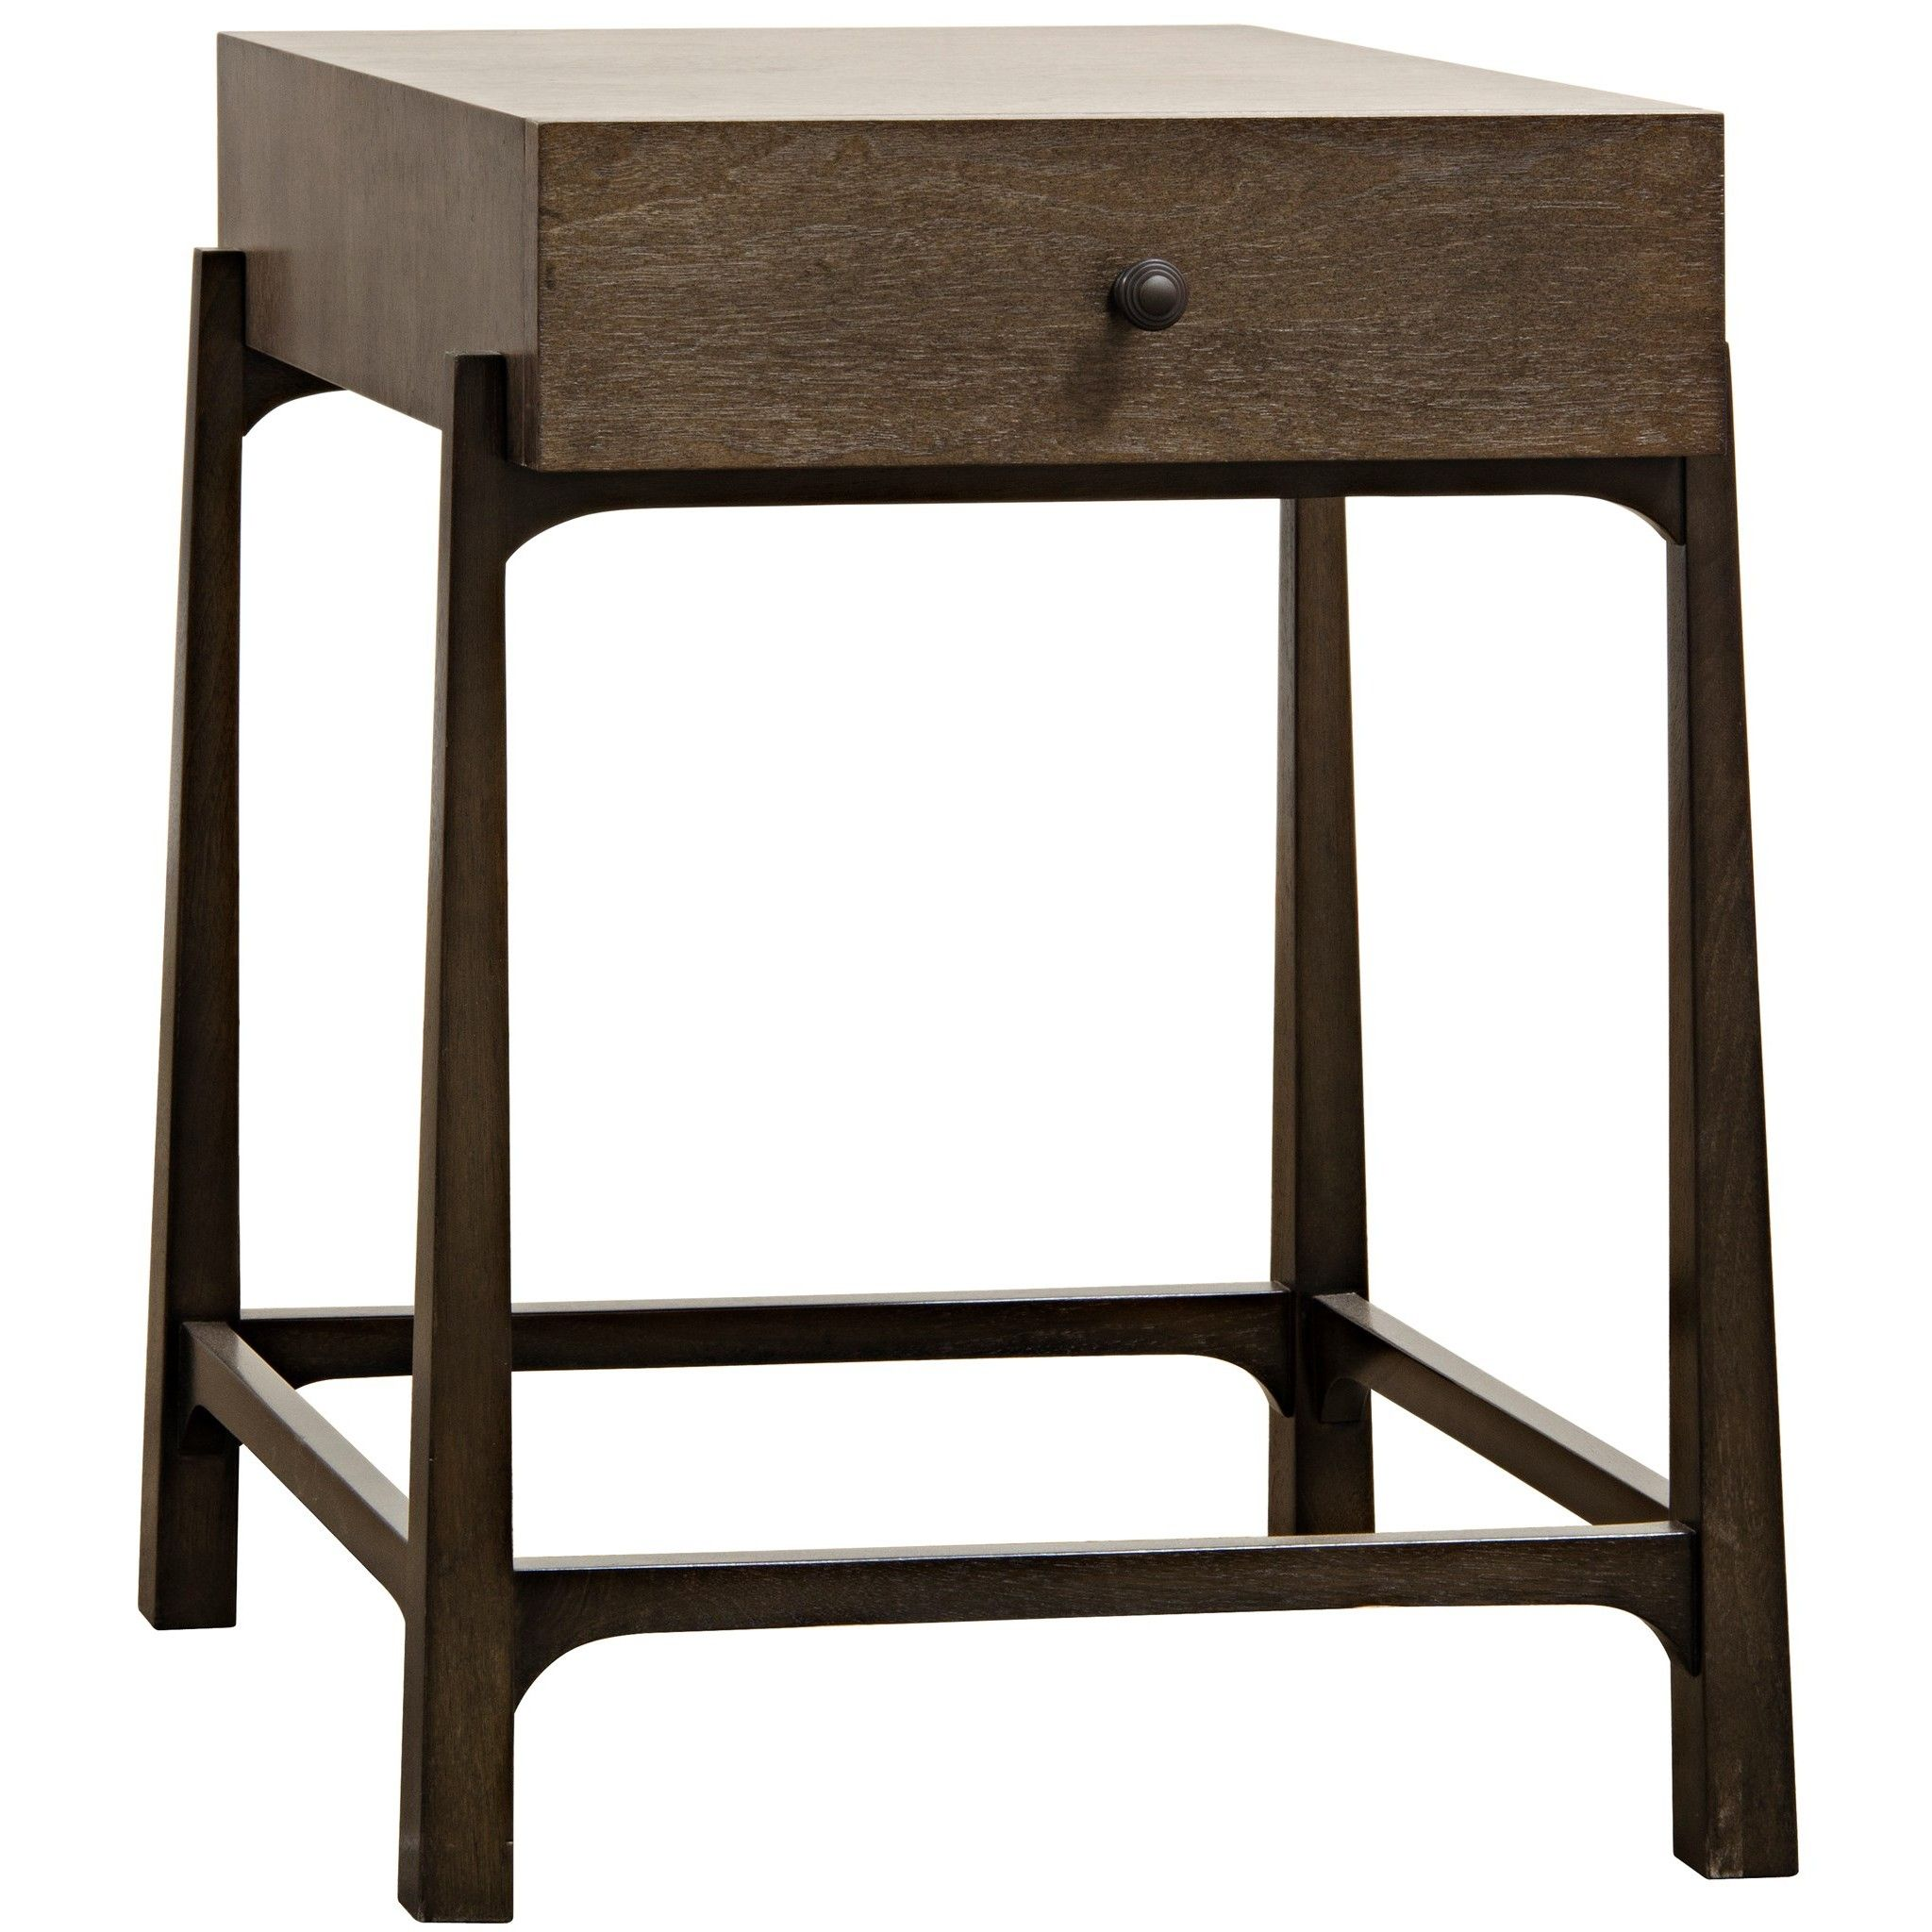 Cfc Protea Side Table In 2021 Side Table Furniture Table [ 2048 x 2048 Pixel ]